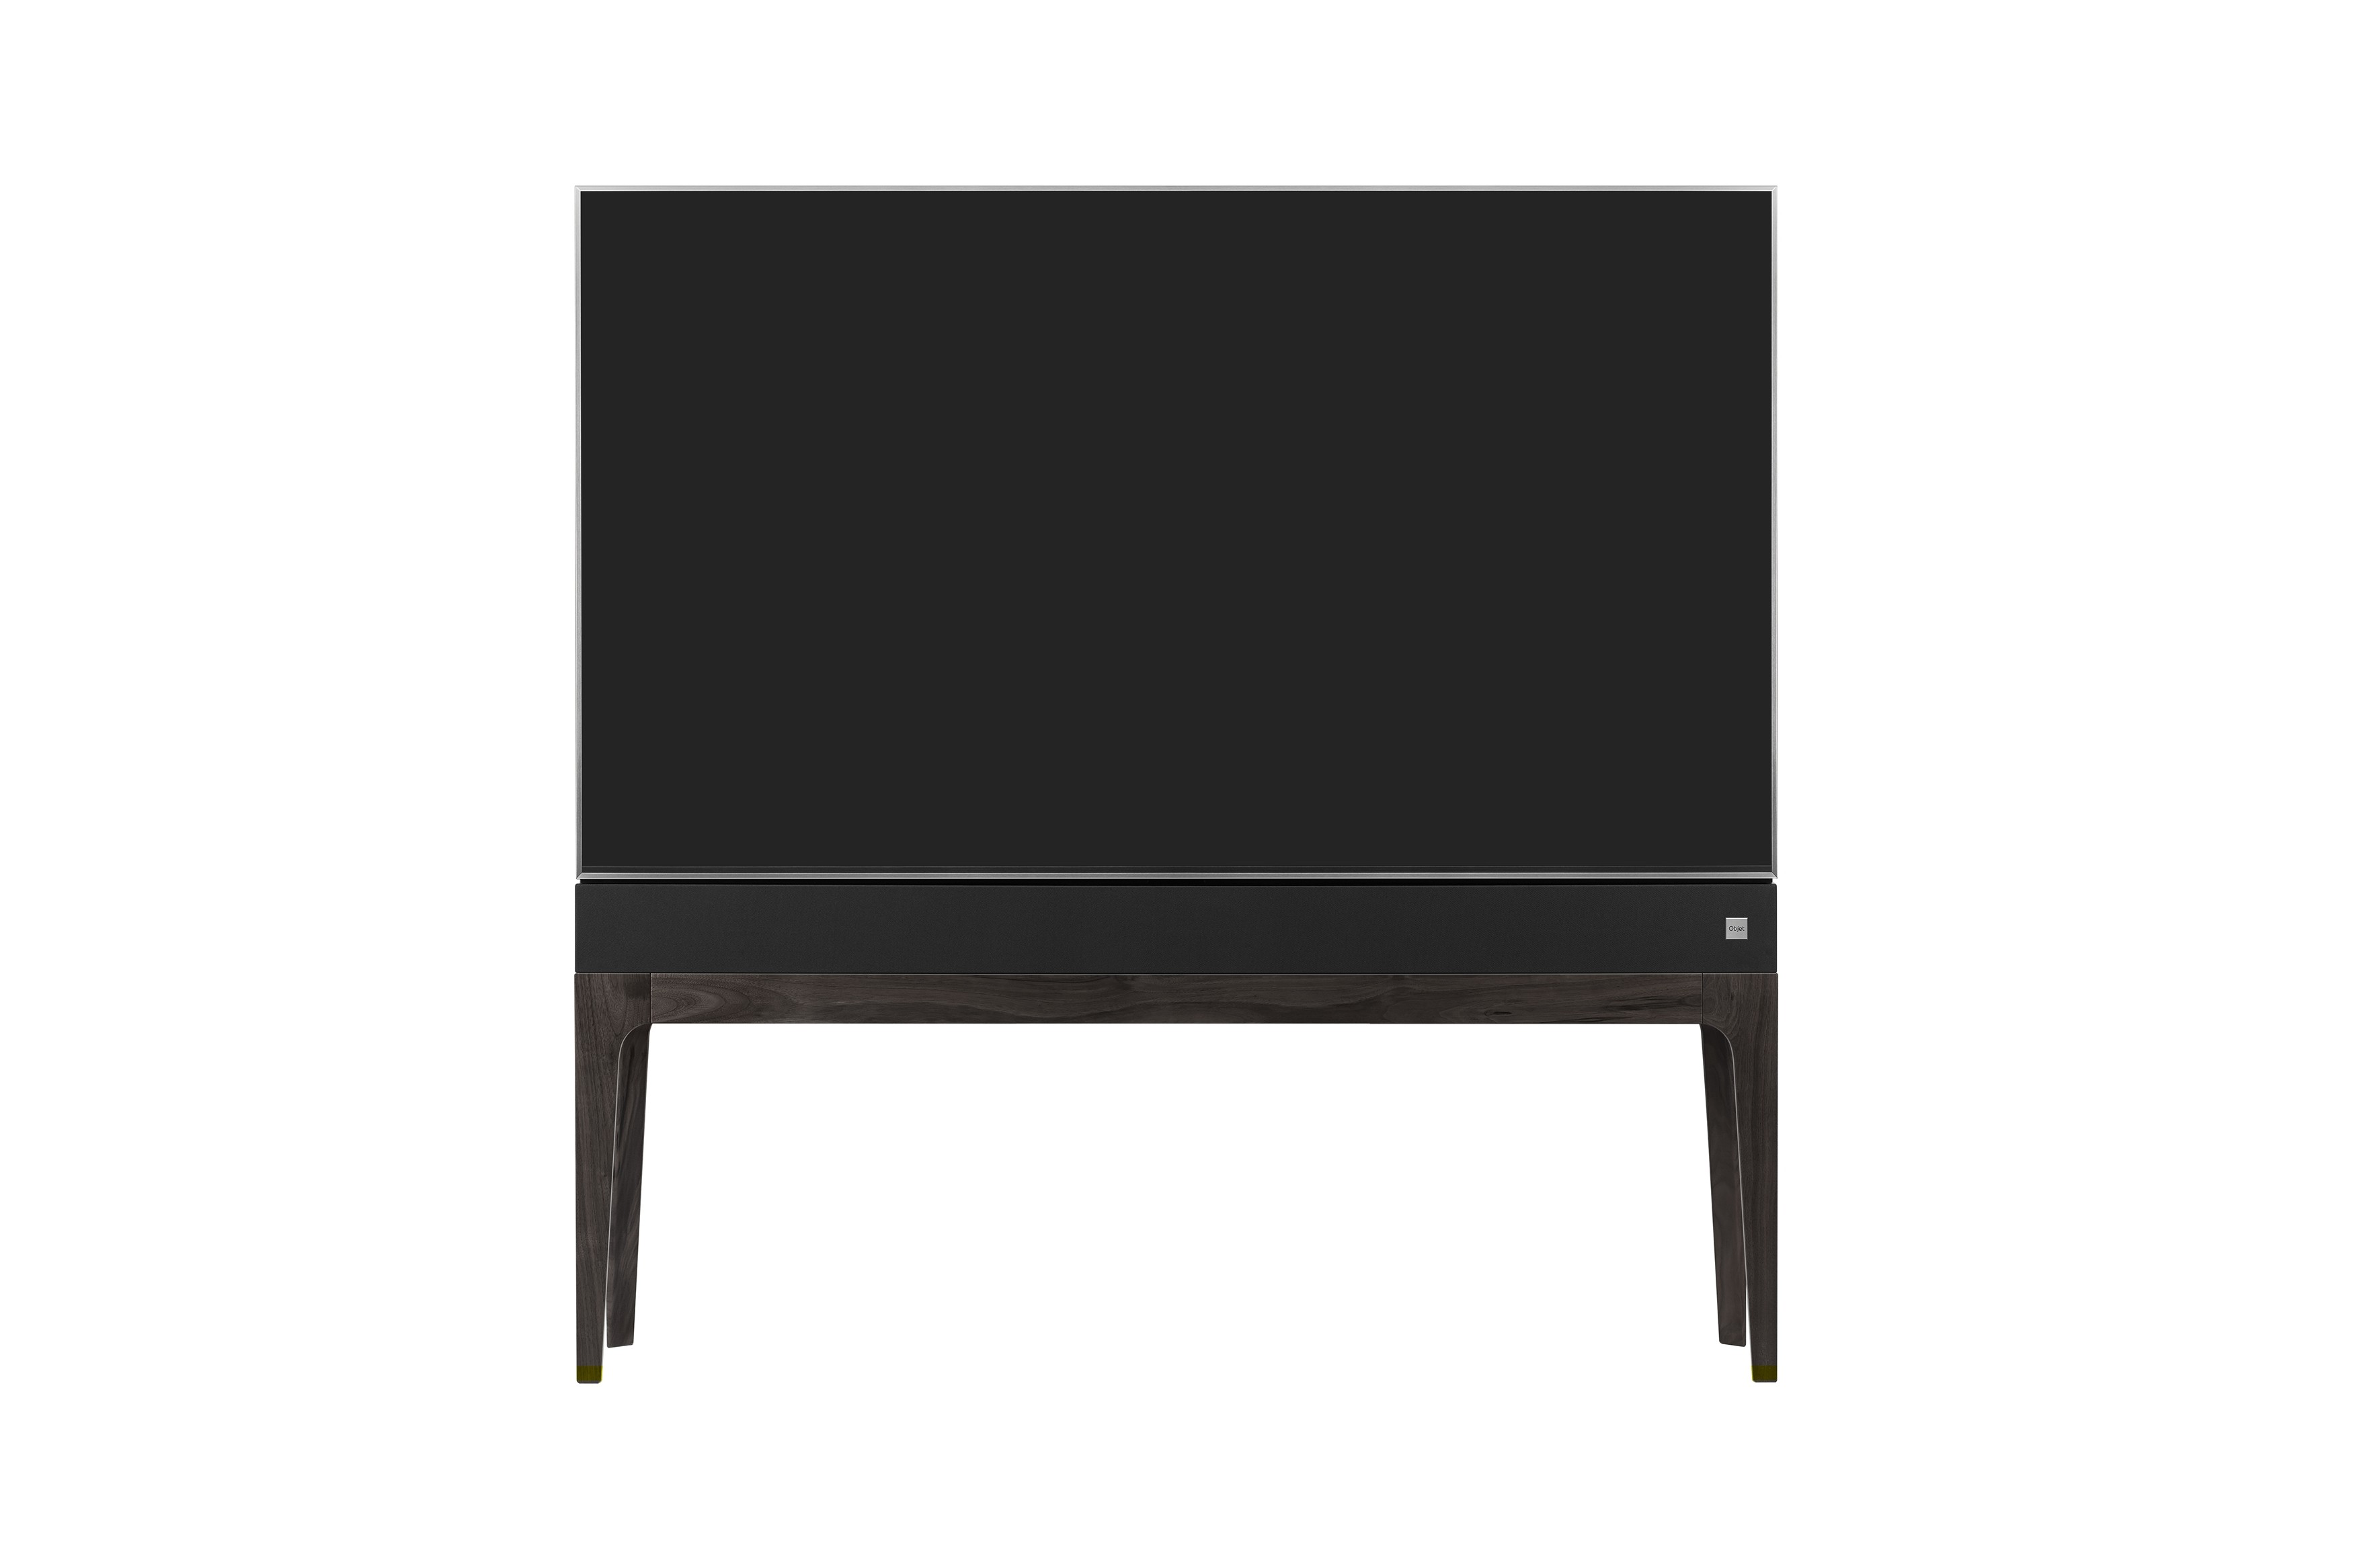 Front view of LG OBJET TV, which is built into a slender cabinet with wooden legs